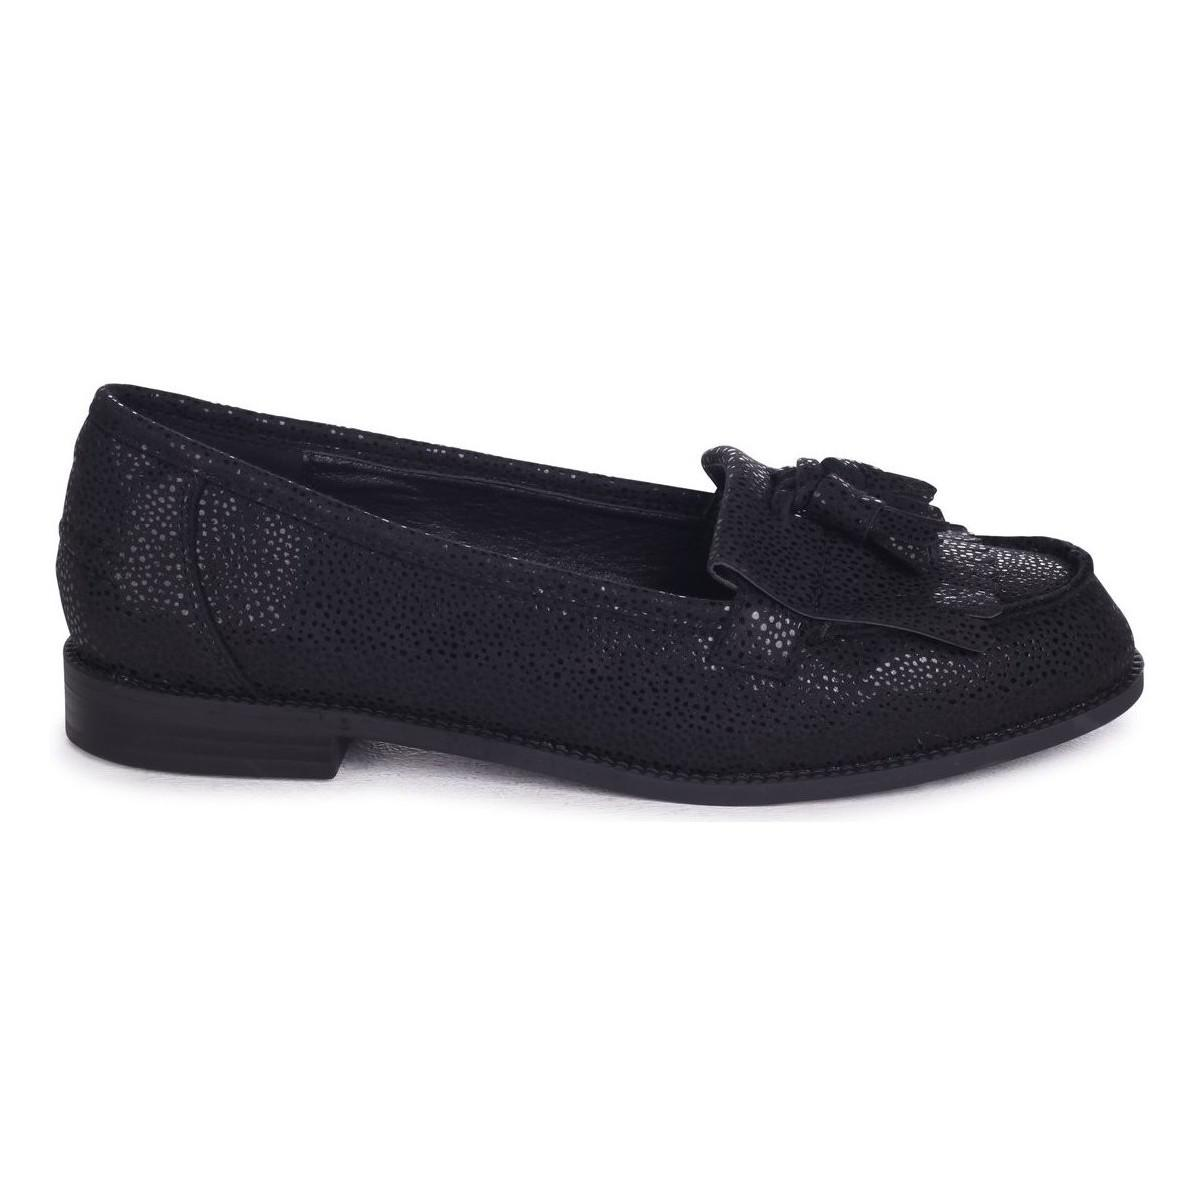 cc16315a0f6 Linzi Rosemary Women s Loafers   Casual Shoes In Black in Black - Lyst